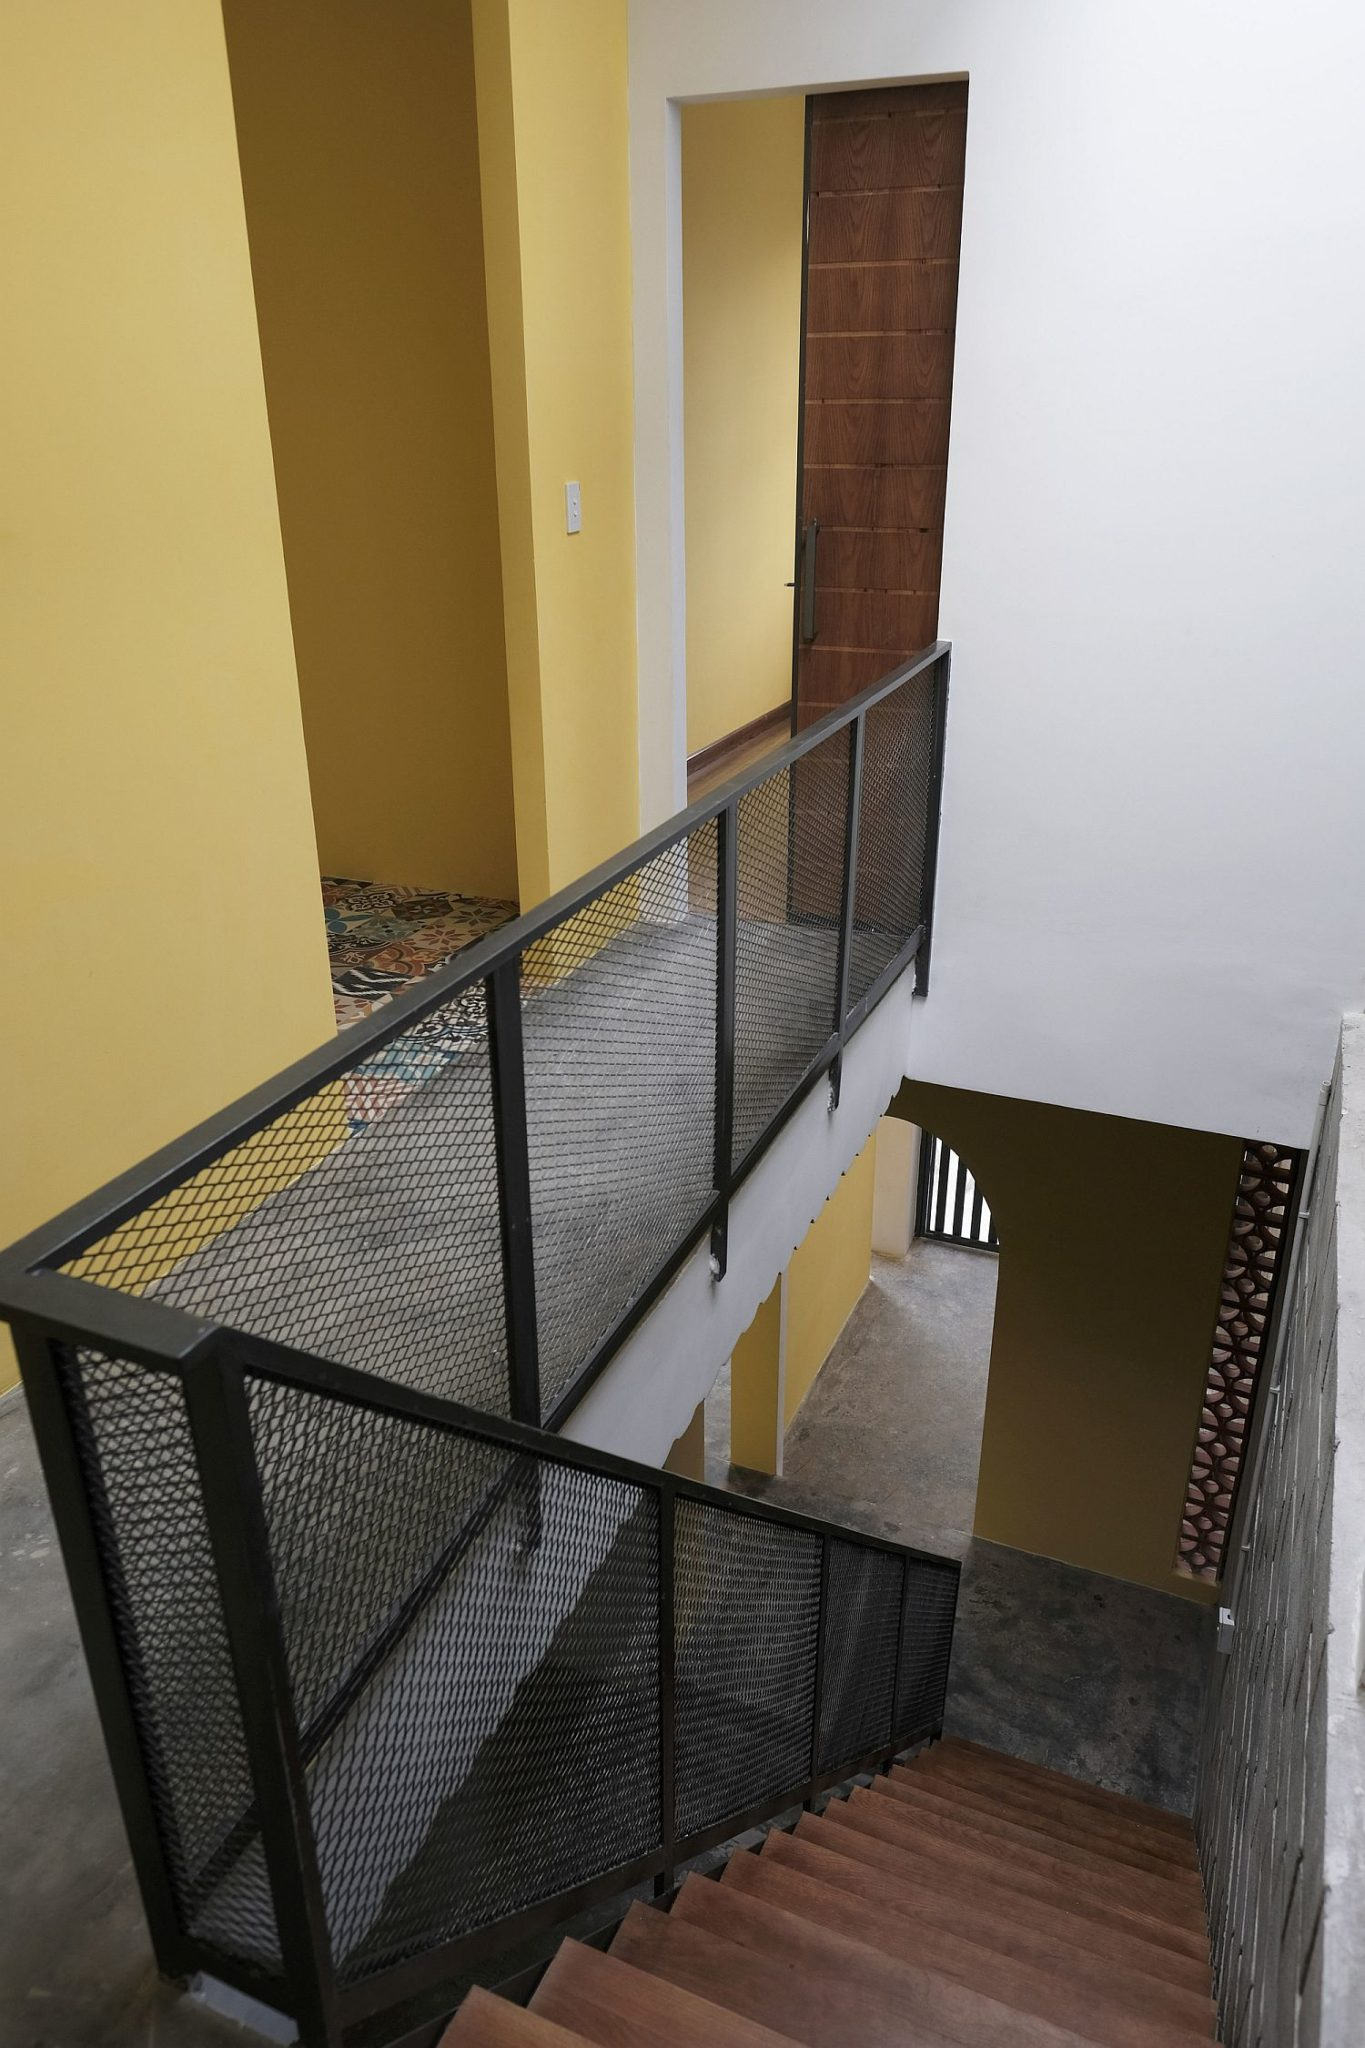 Metal sheet used as railing for staircase